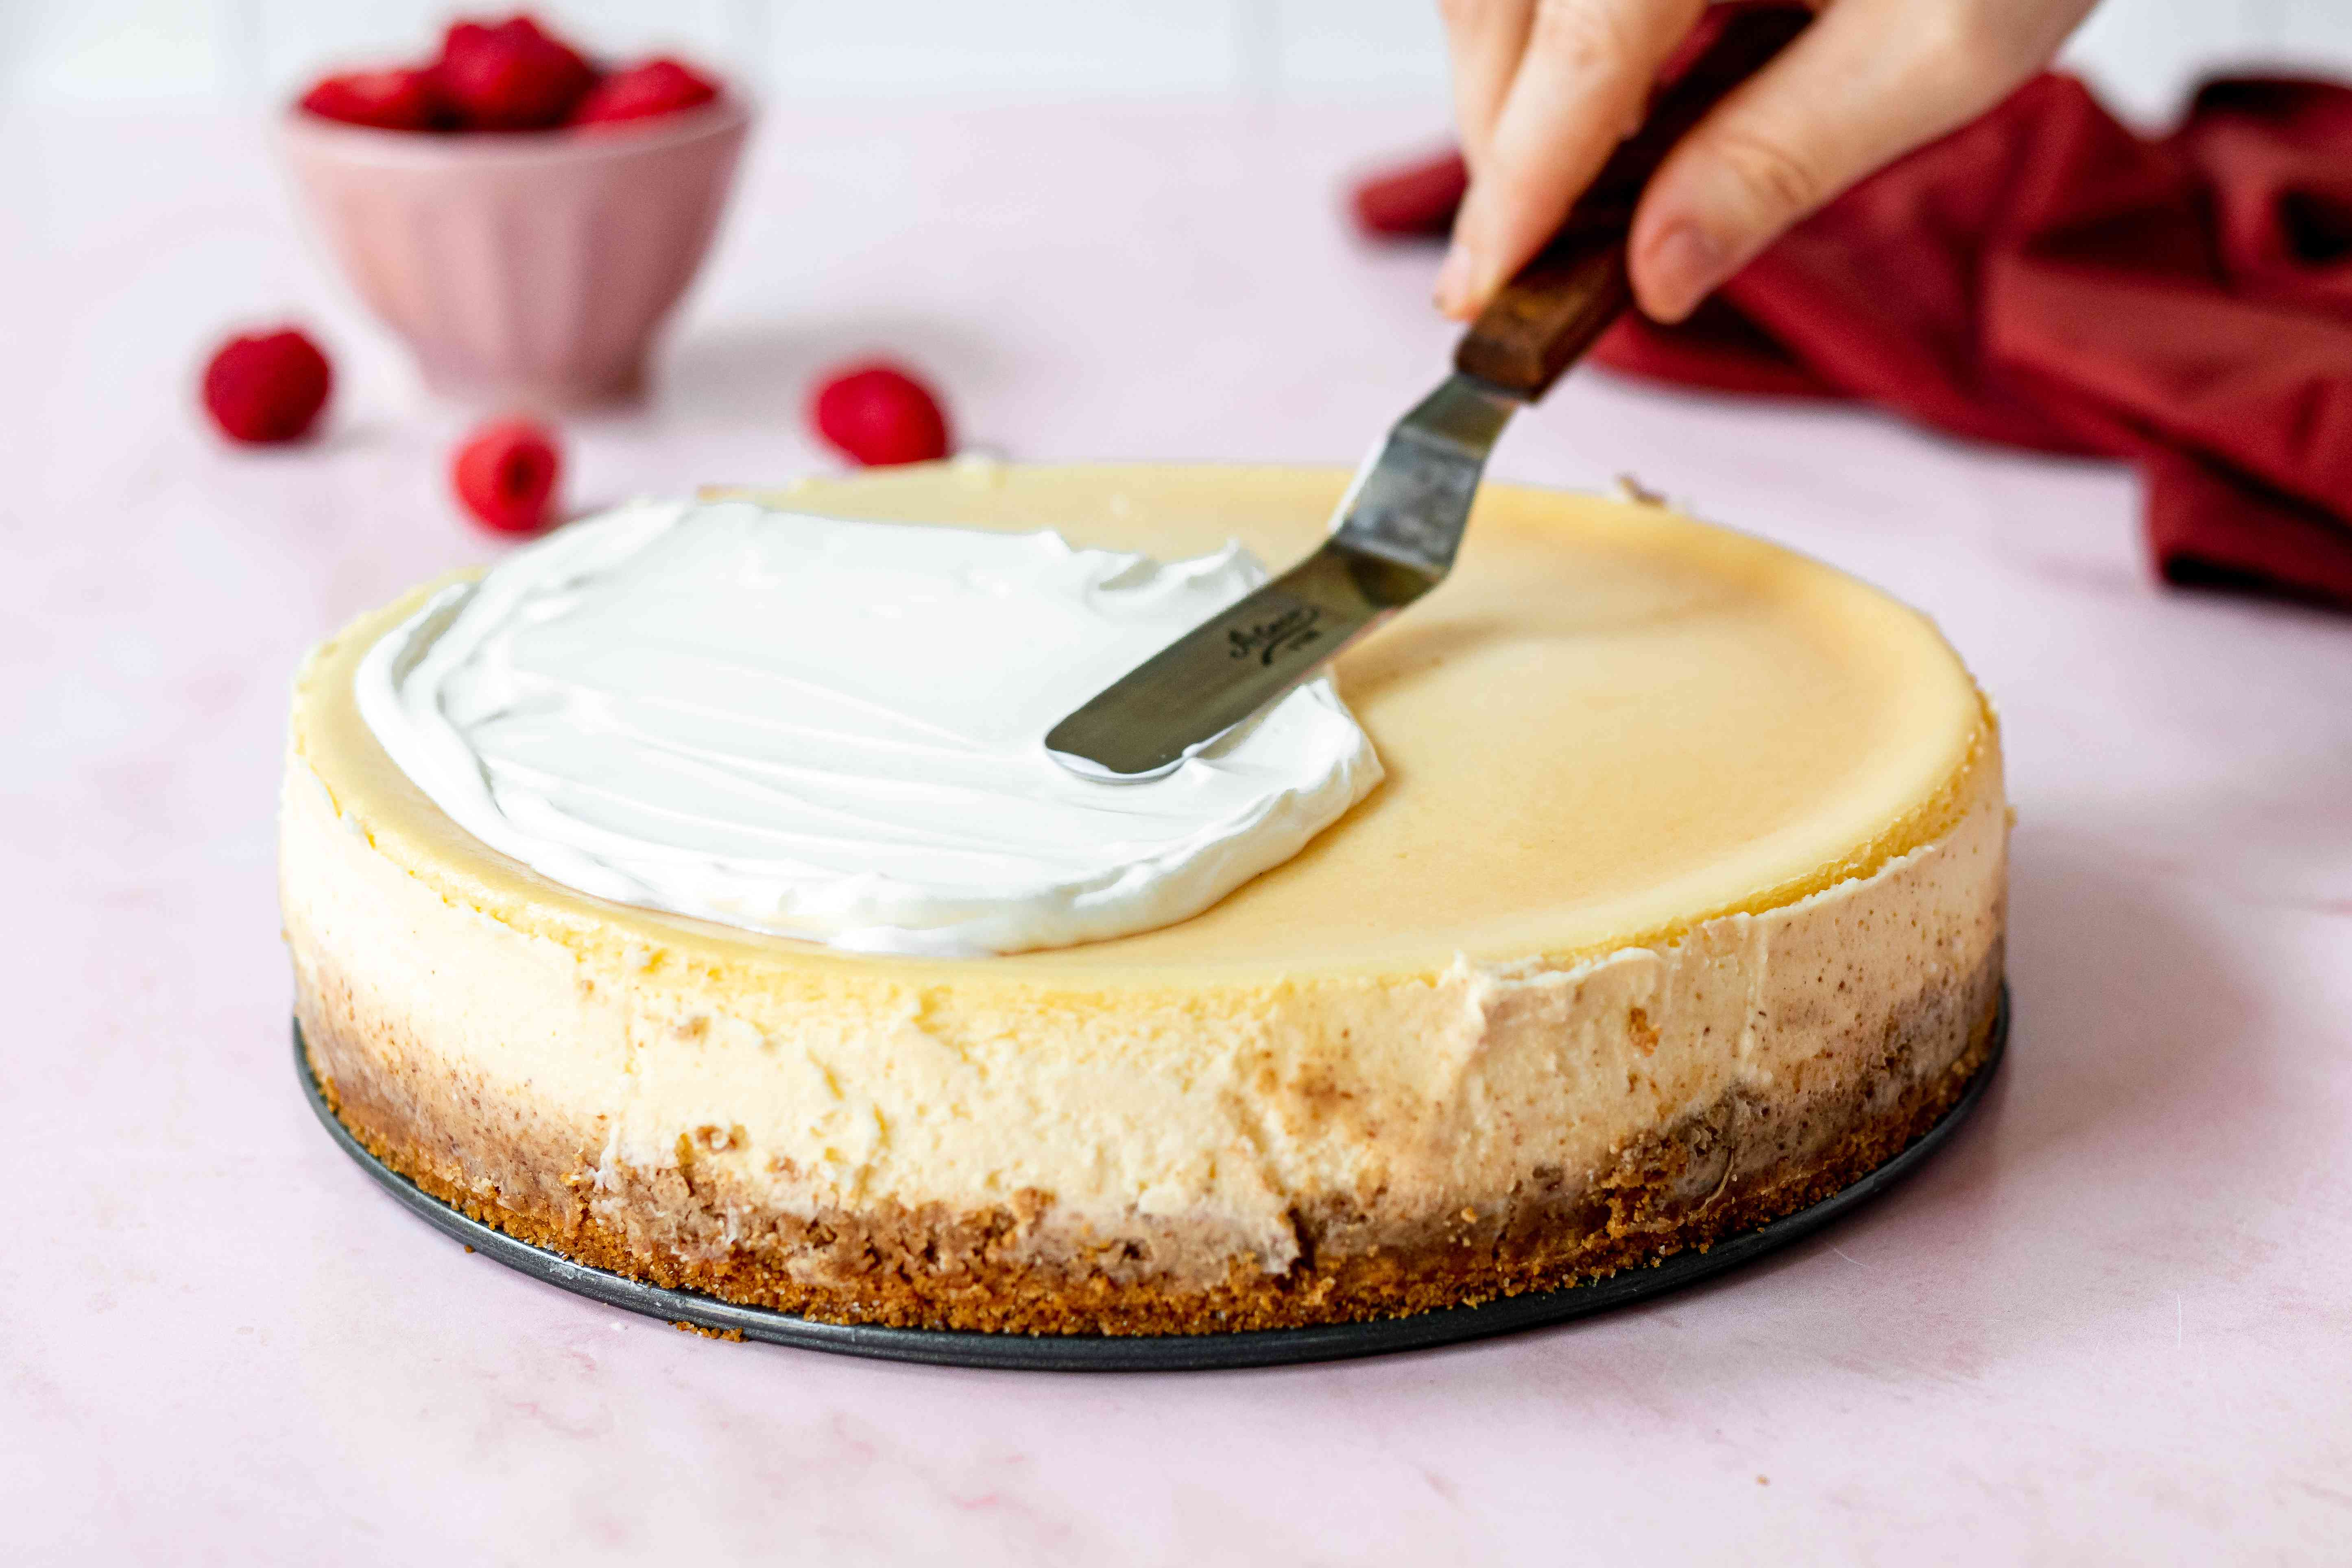 Spreading the cheesecake with a sour cream topping.